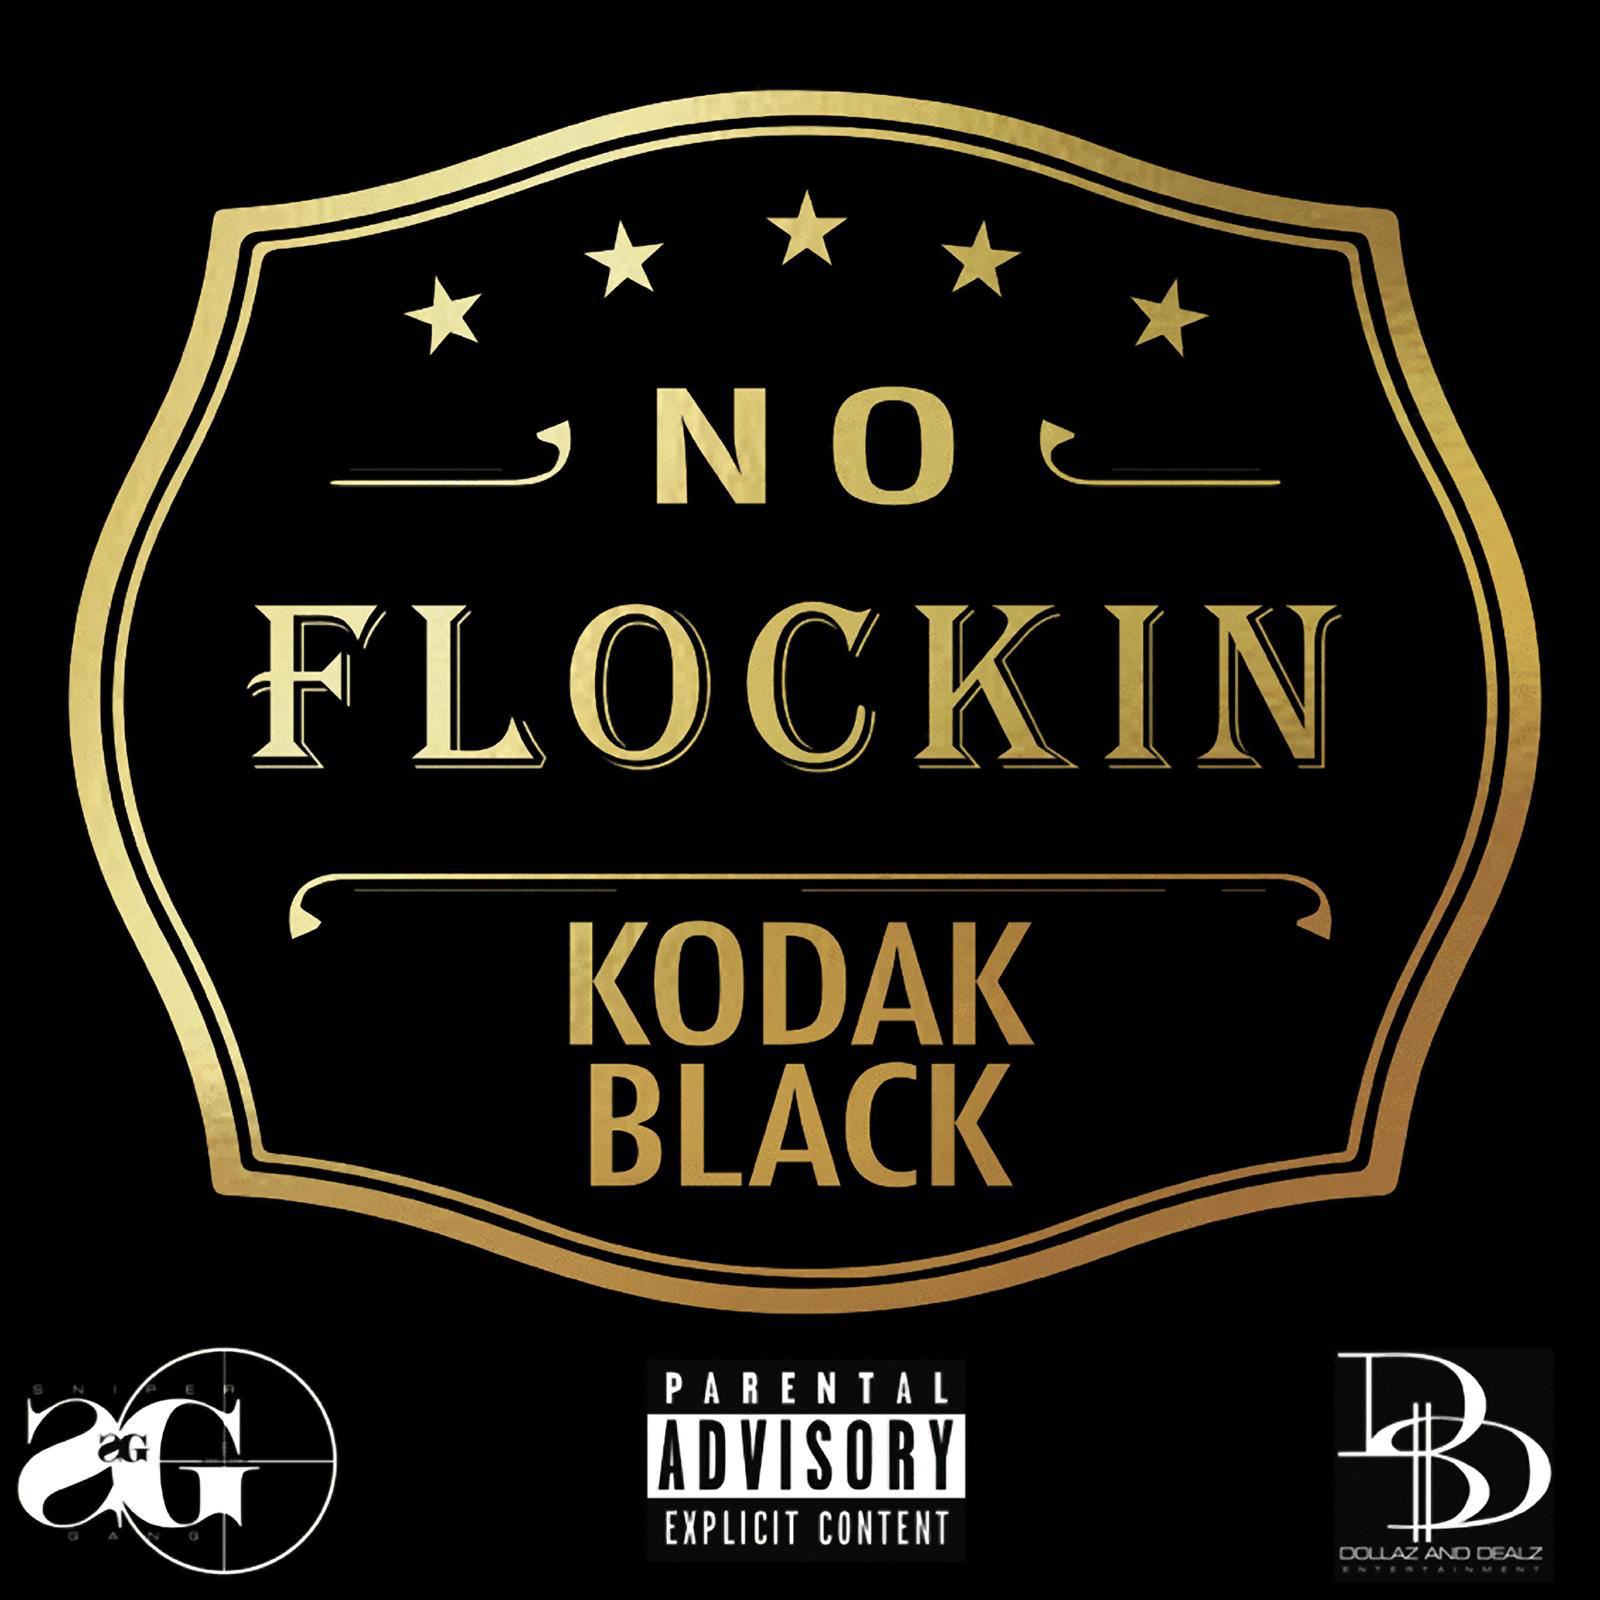 Kodak Black - No Flockin - Single